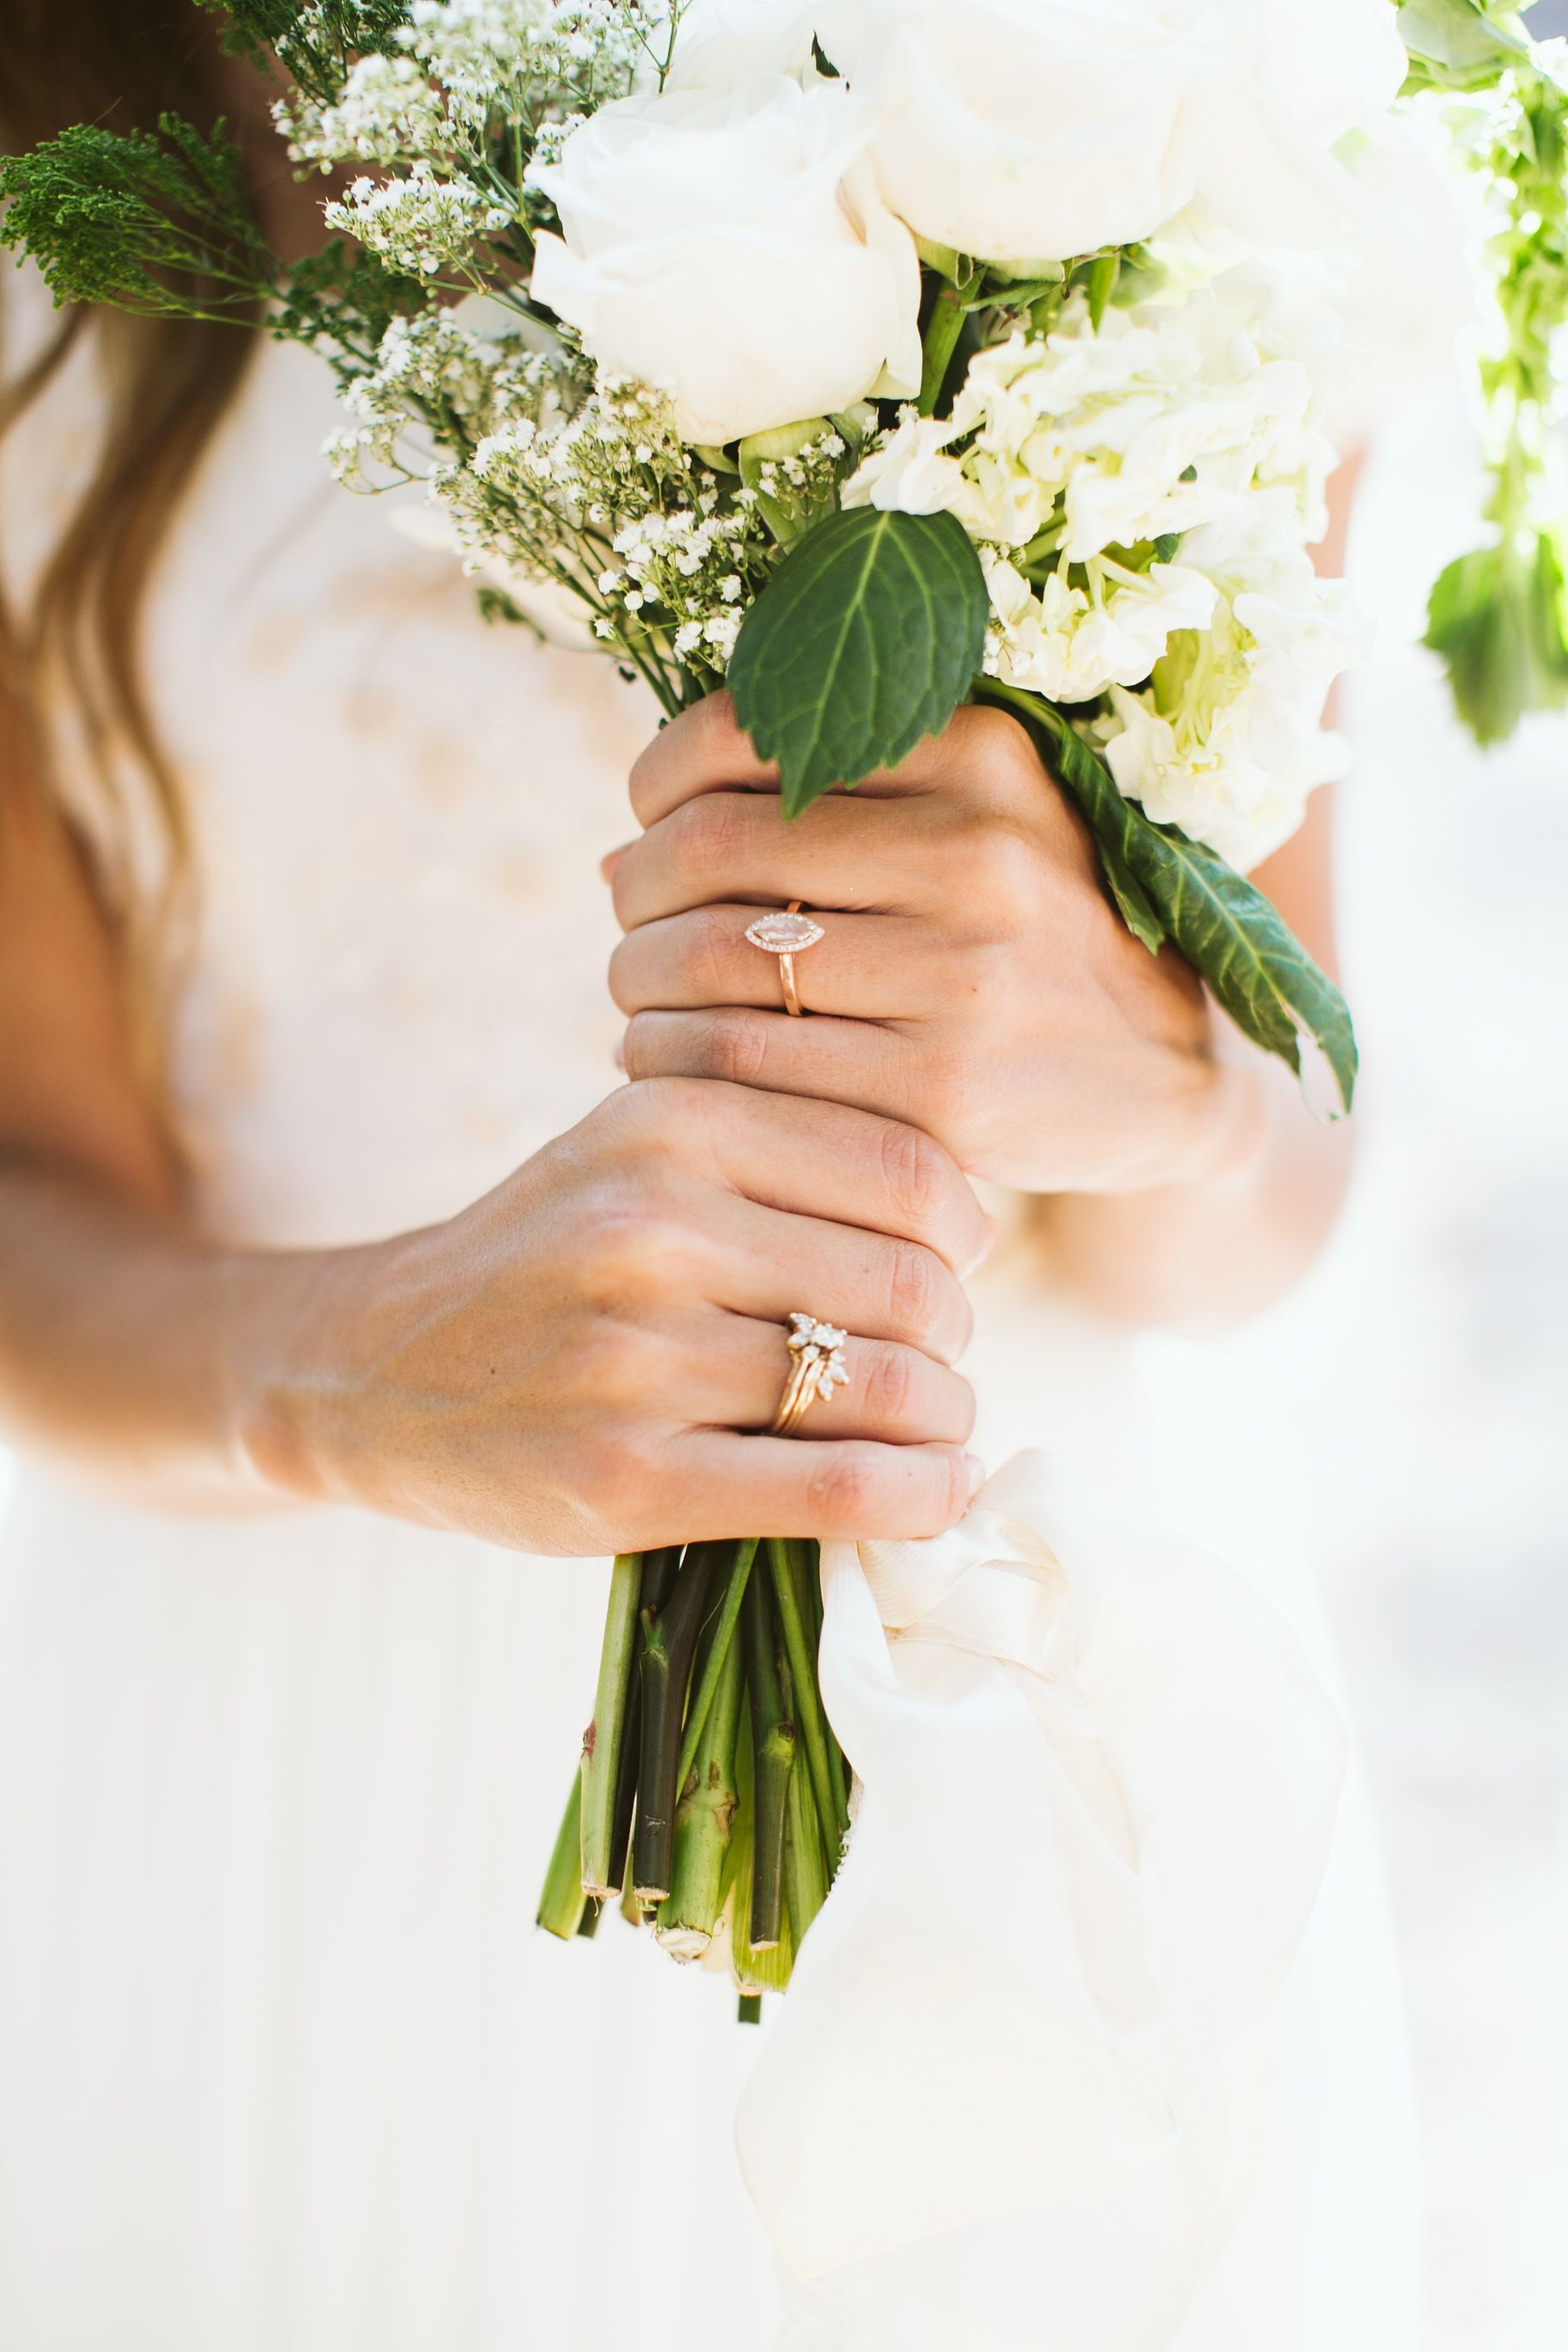 How much does a wedding photographer cost? Wedding